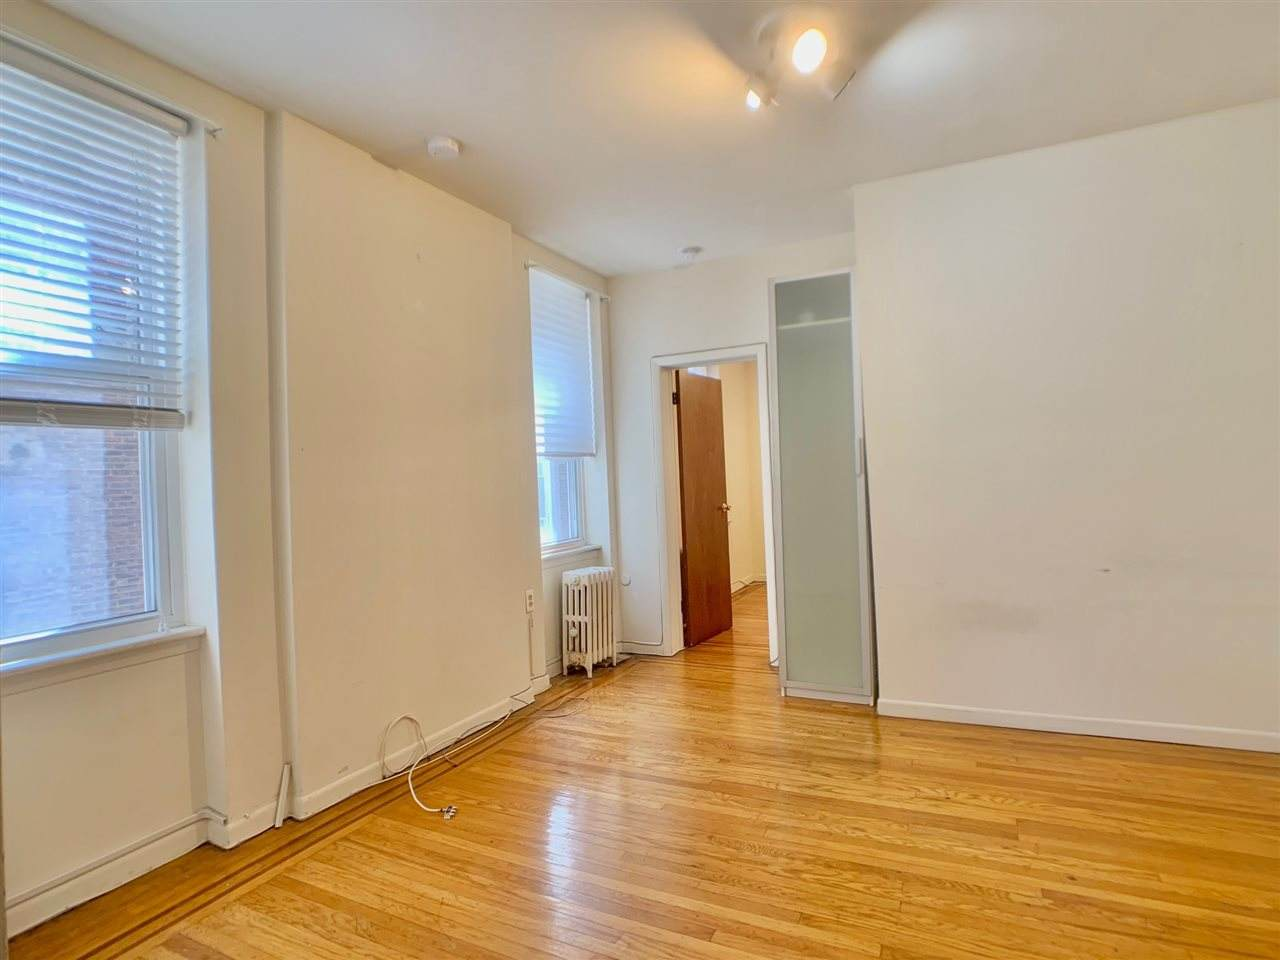 106 11TH ST - Photo 1